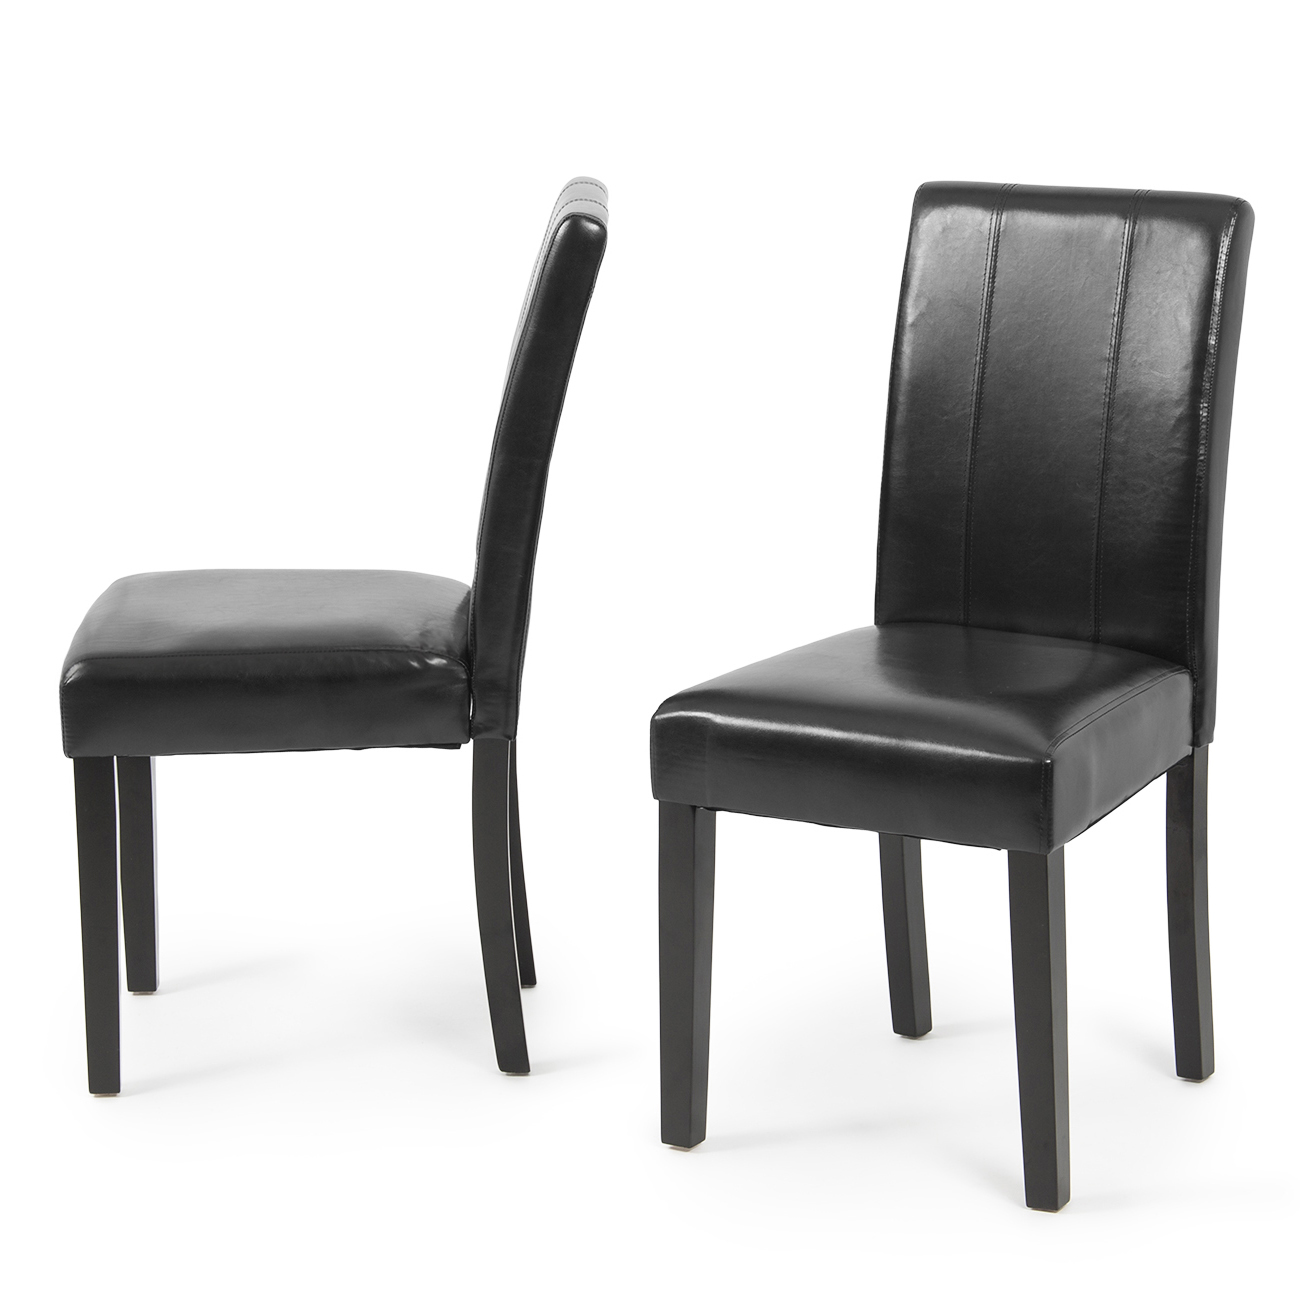 Set of 2 elegant modern design leather parsons dining living chairs furniture ebay - Modern leather dining room chairs ...